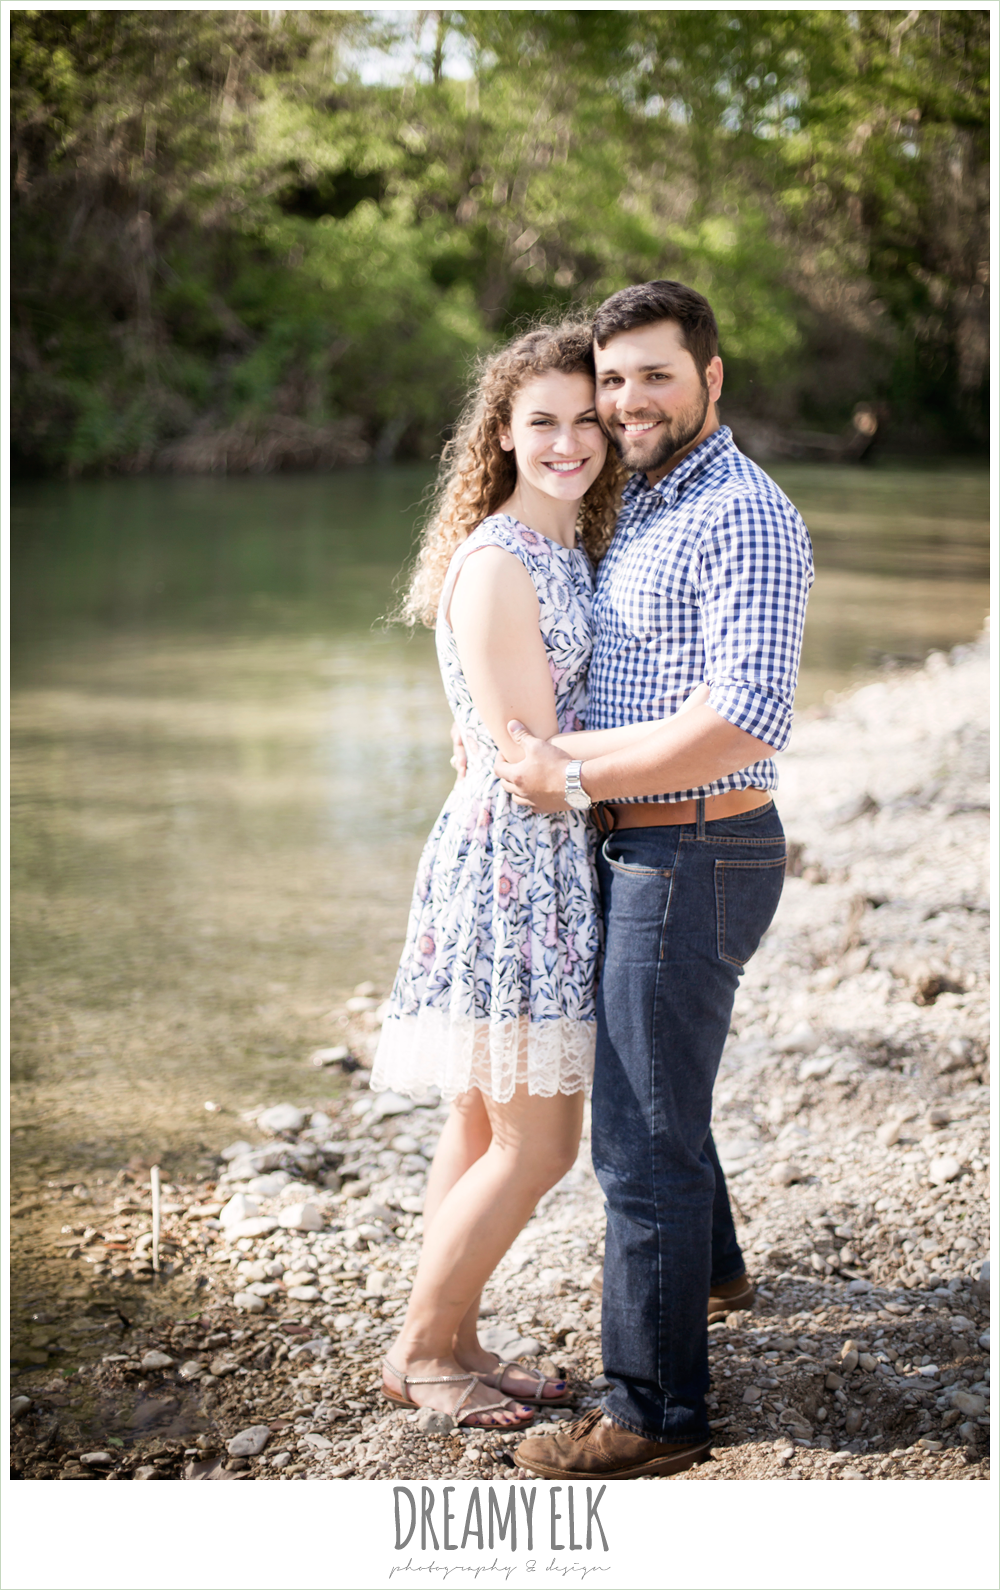 river, outdoor spring farm engagement photo, austin, texas {dreamy elk photography and design}